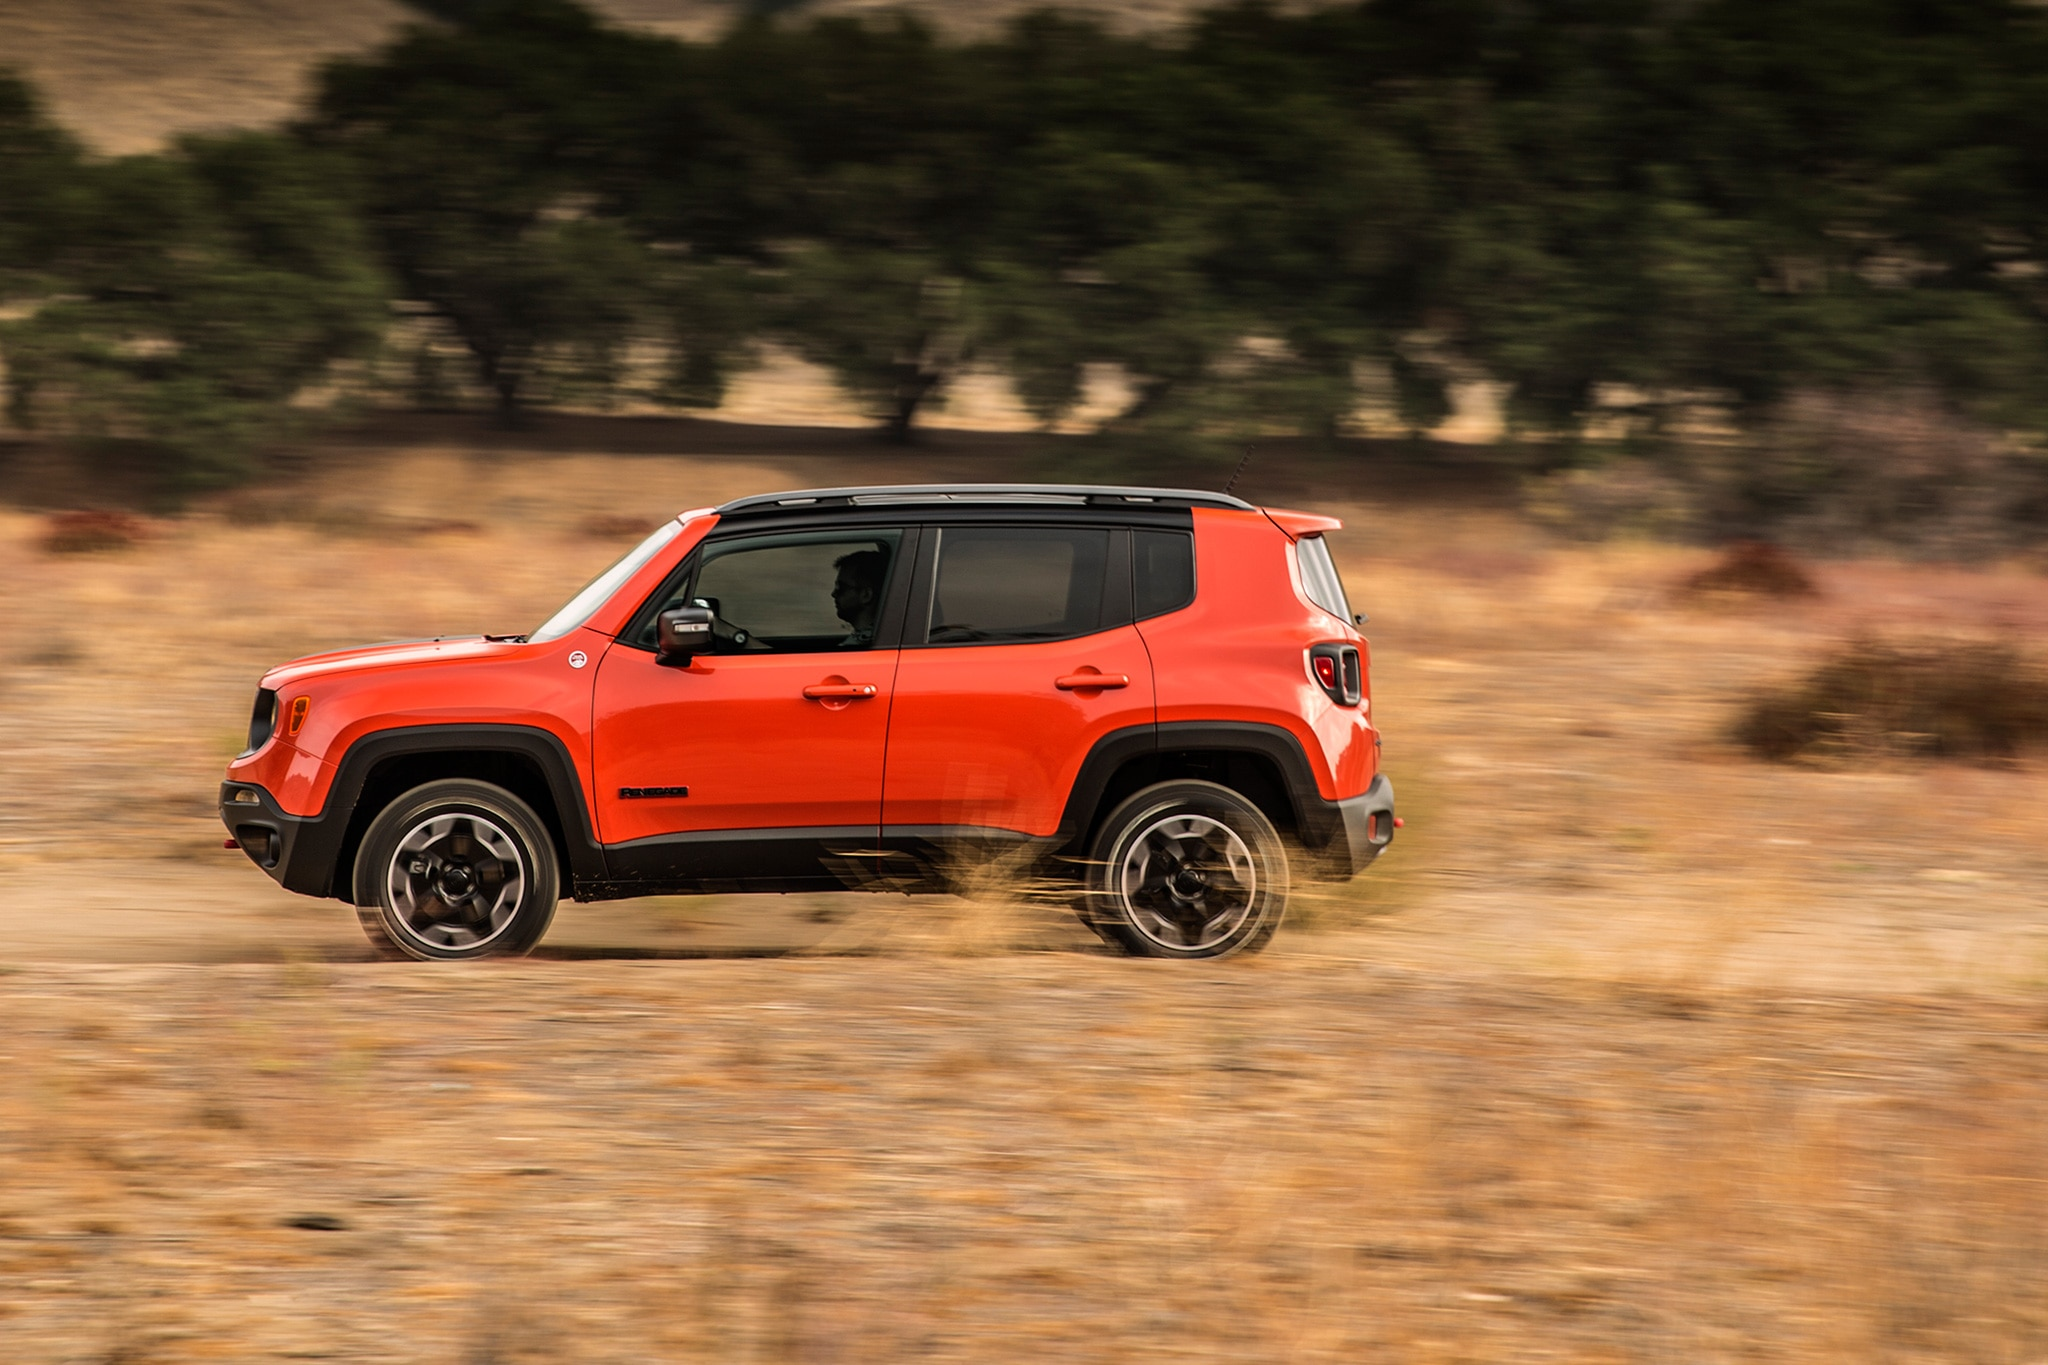 New 2017 Jeep Renegade Deserthawk To Debut At L.A. Auto